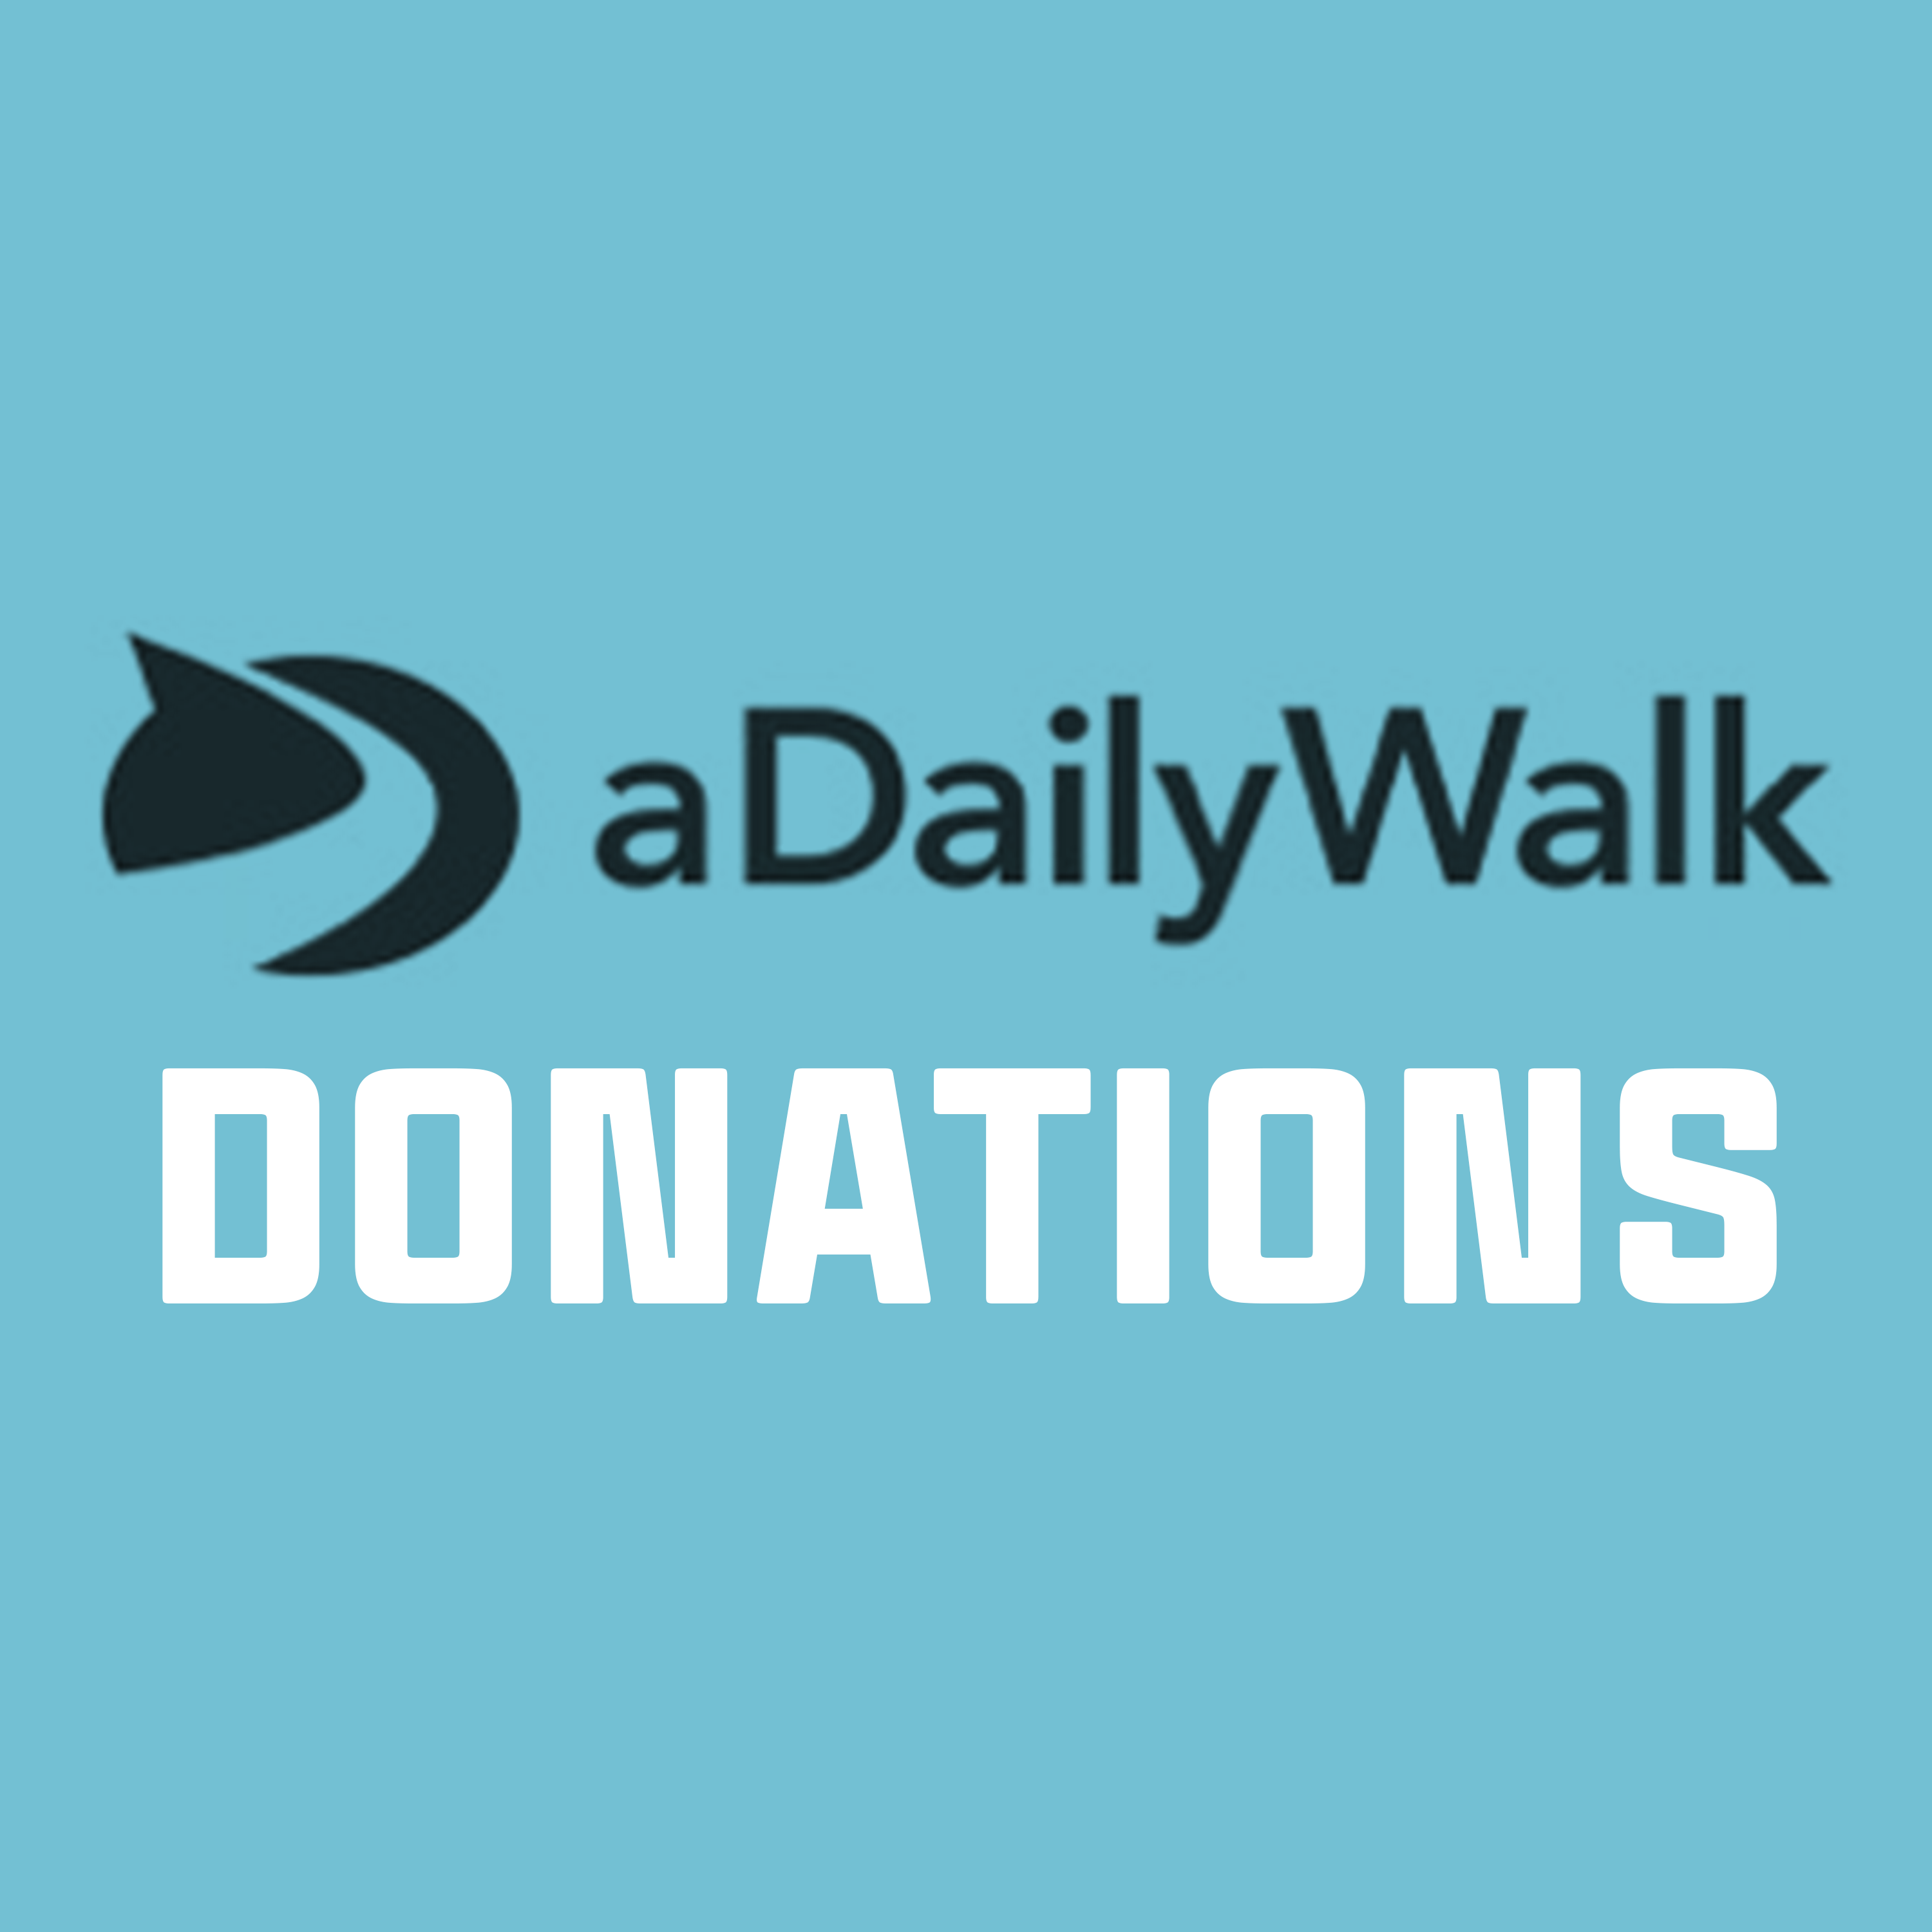 Donation to support A Daily Walk